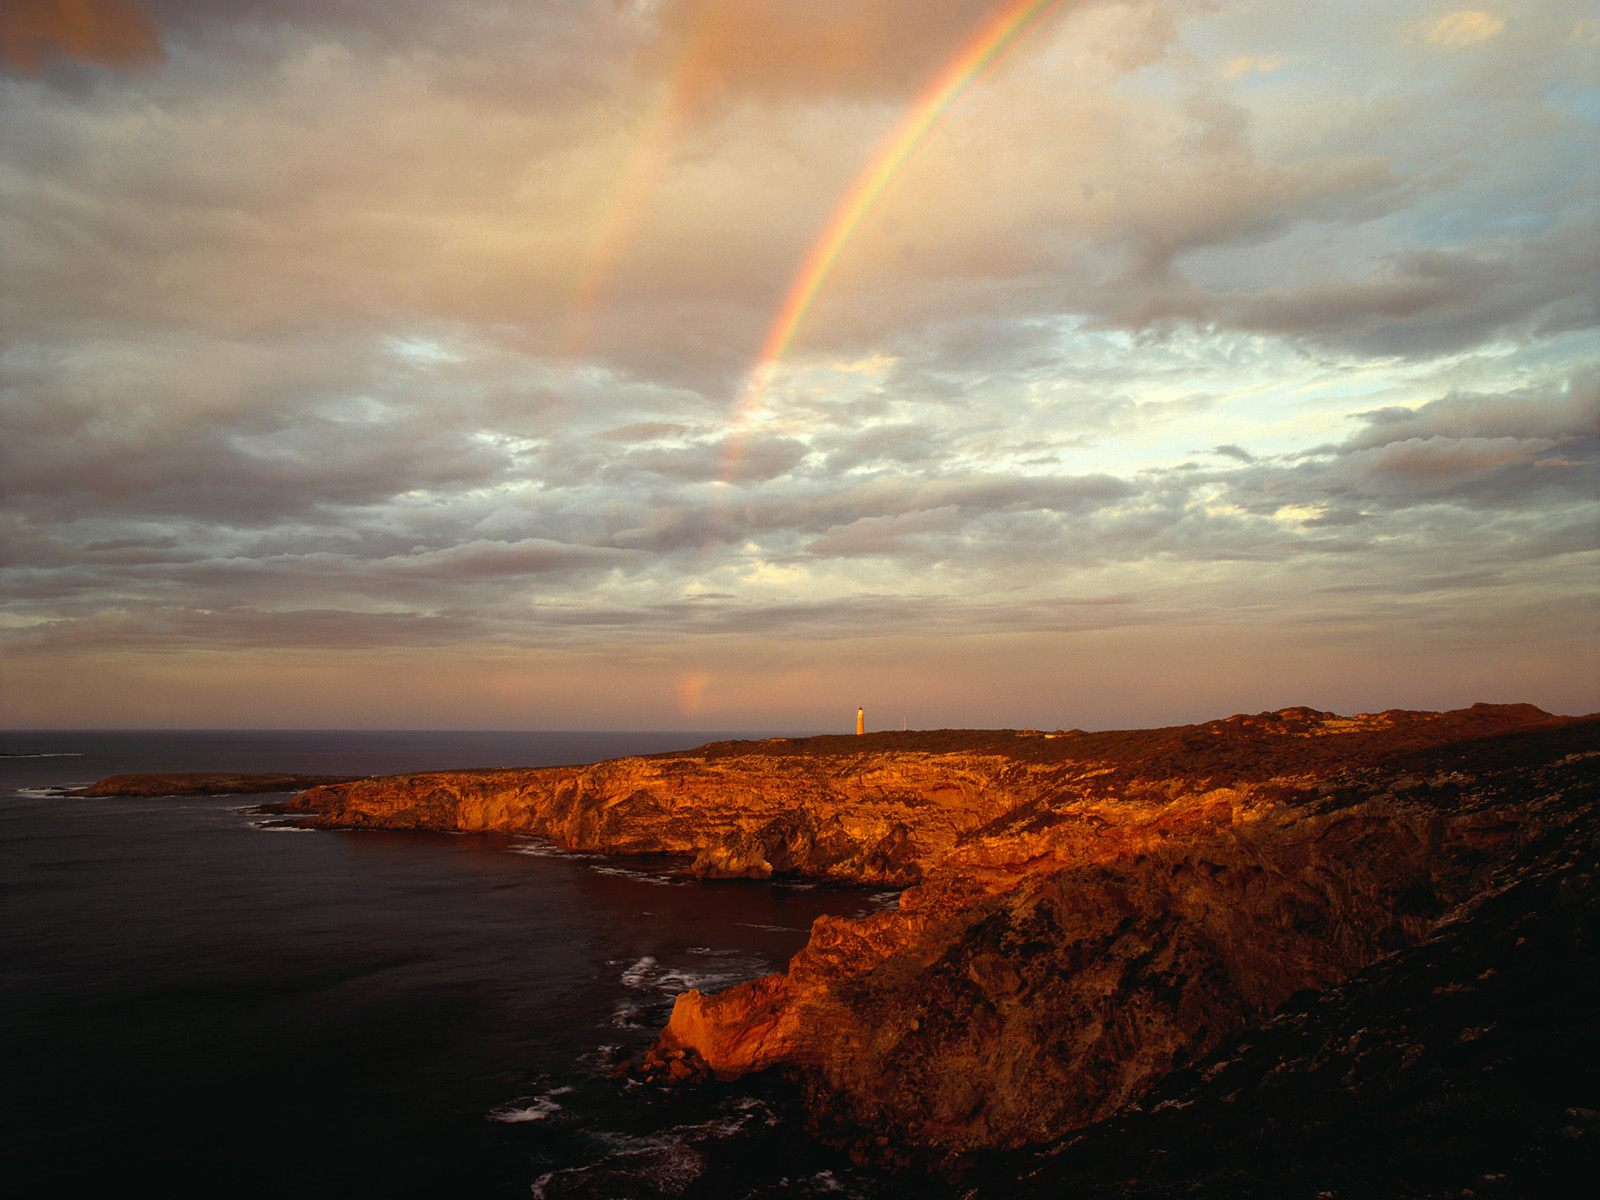 Sky, rainbow and sea - wallpaper, rocky shore